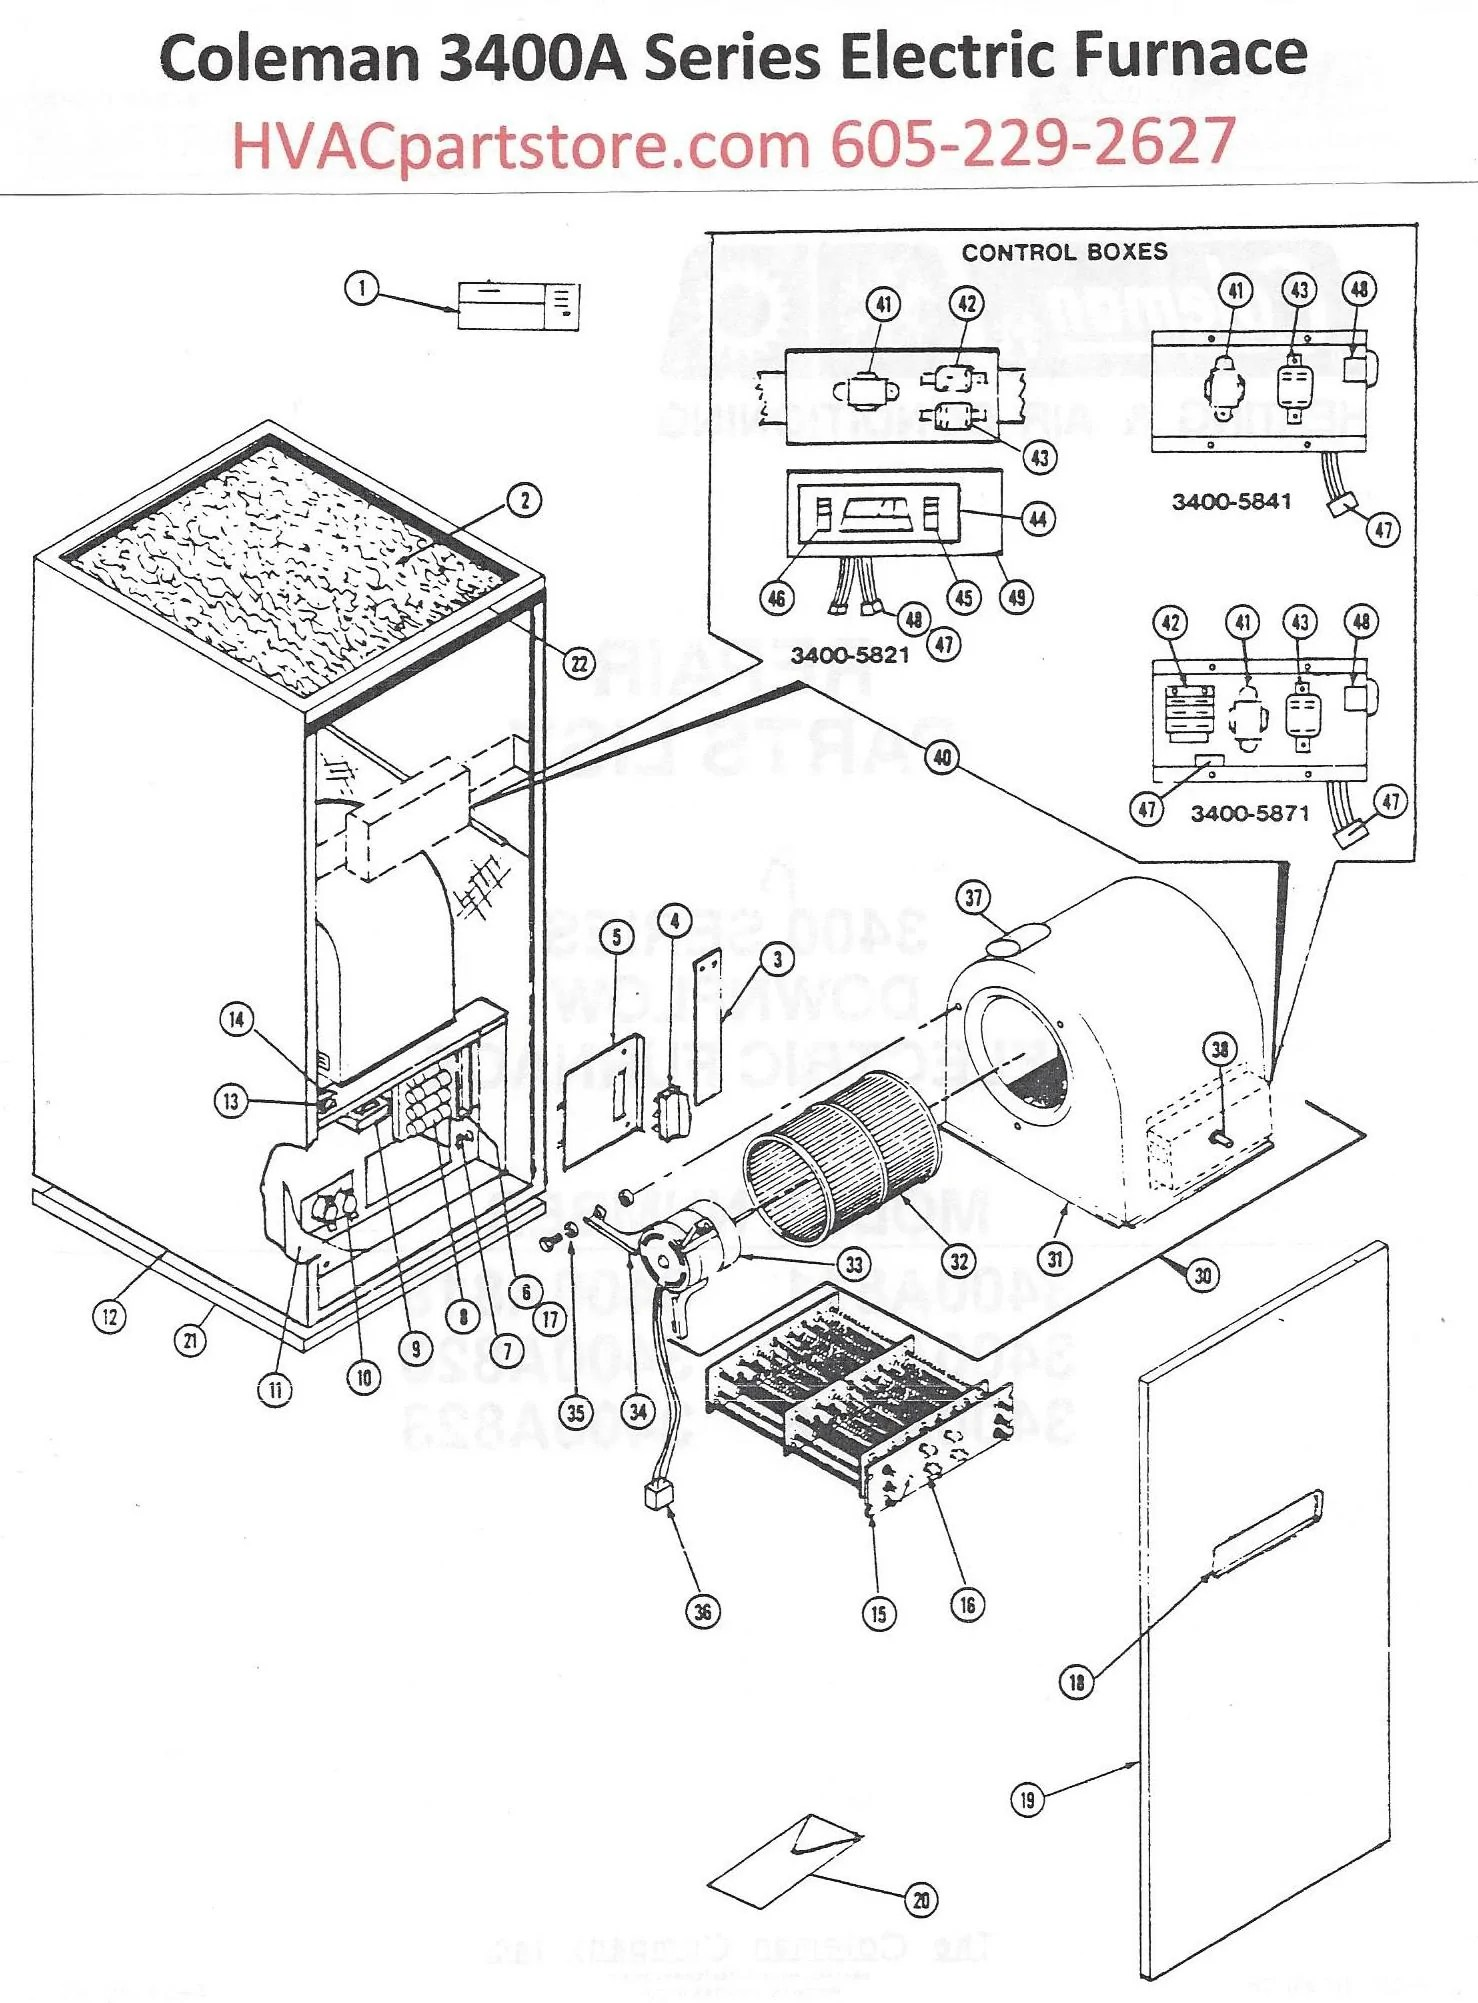 3400a811 coleman electric furnace parts hvacpartstore broan wiring diagram click here to view an installation manual [ 1478 x 2003 Pixel ]